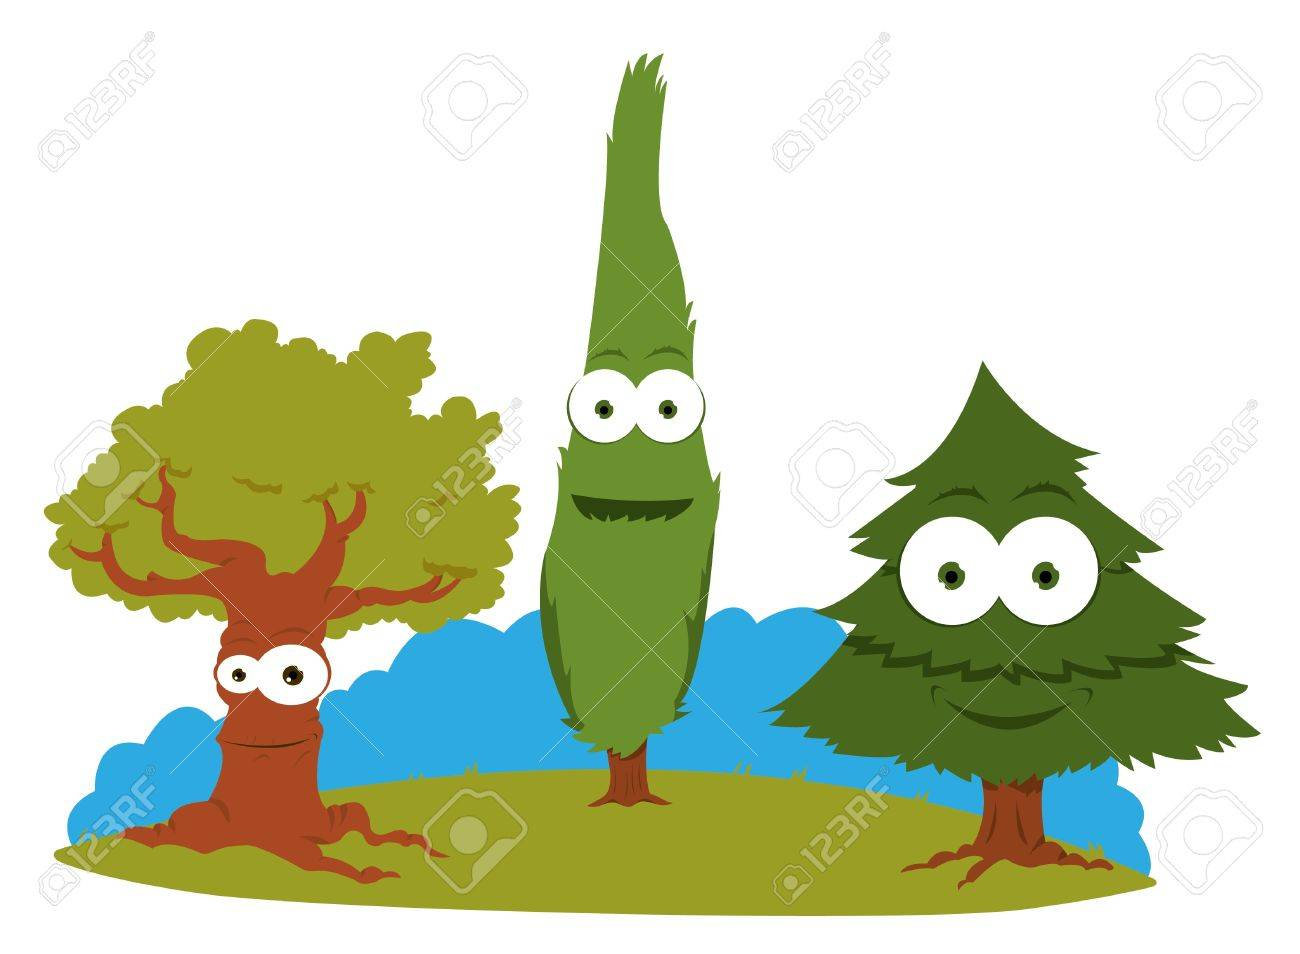 a cartoon representing a group of friendly trees royalty free